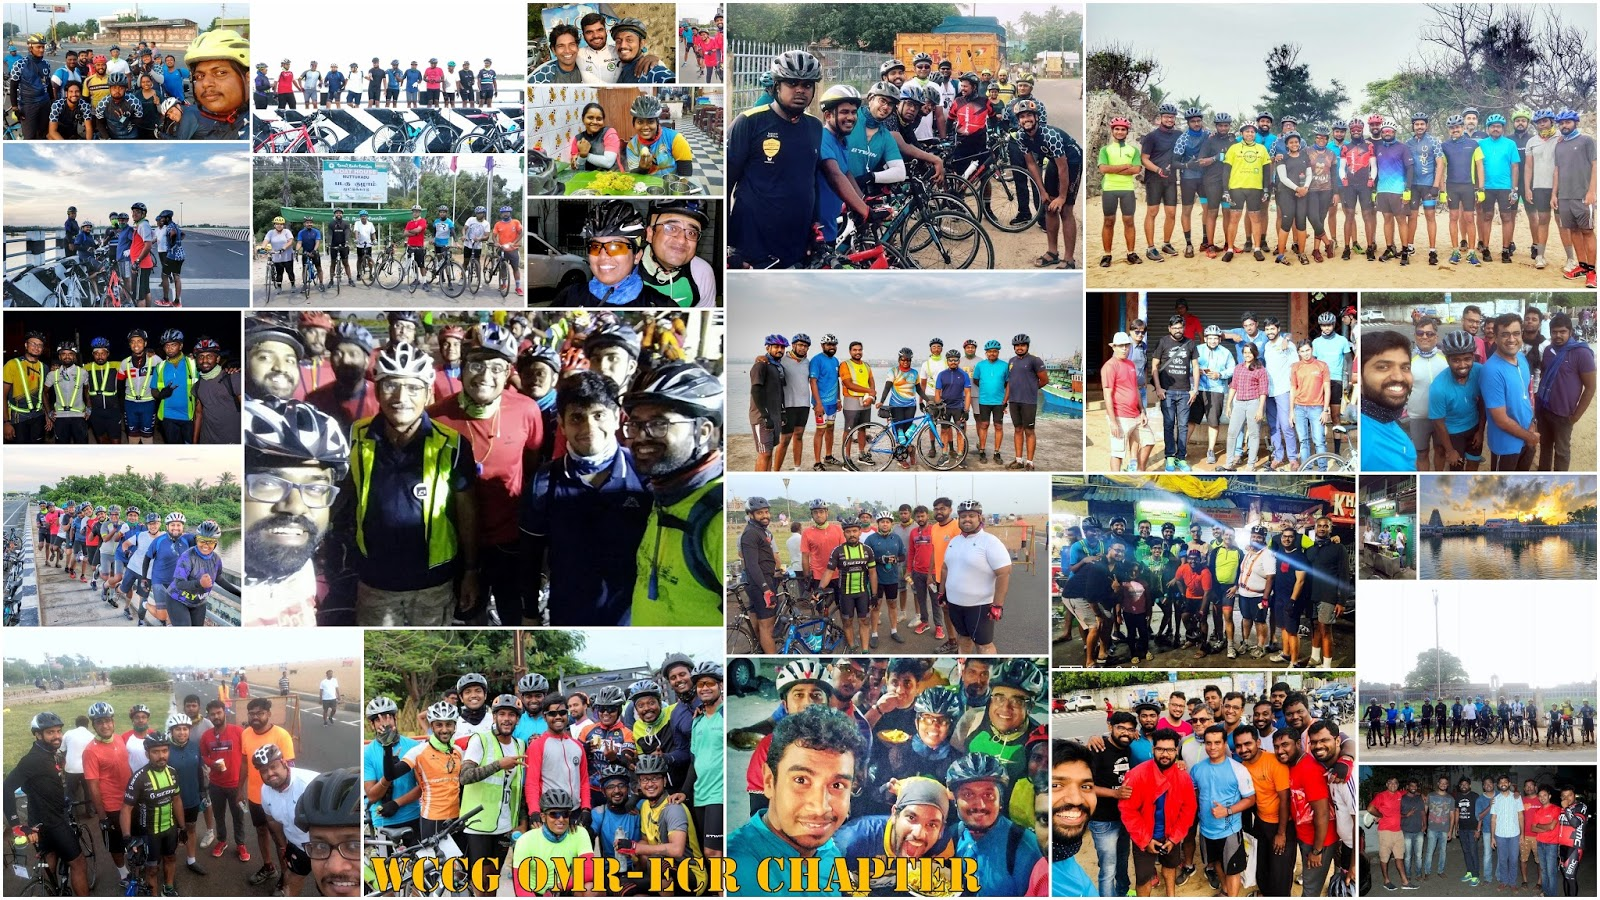 Wccg omr ecr chapter summary 2017 wccg chennai cyclists our chapter holds the name of the most beloved route in chennai in its name all cyclist in chennai love to ride in omr ecr geographically flat and well solutioingenieria Choice Image